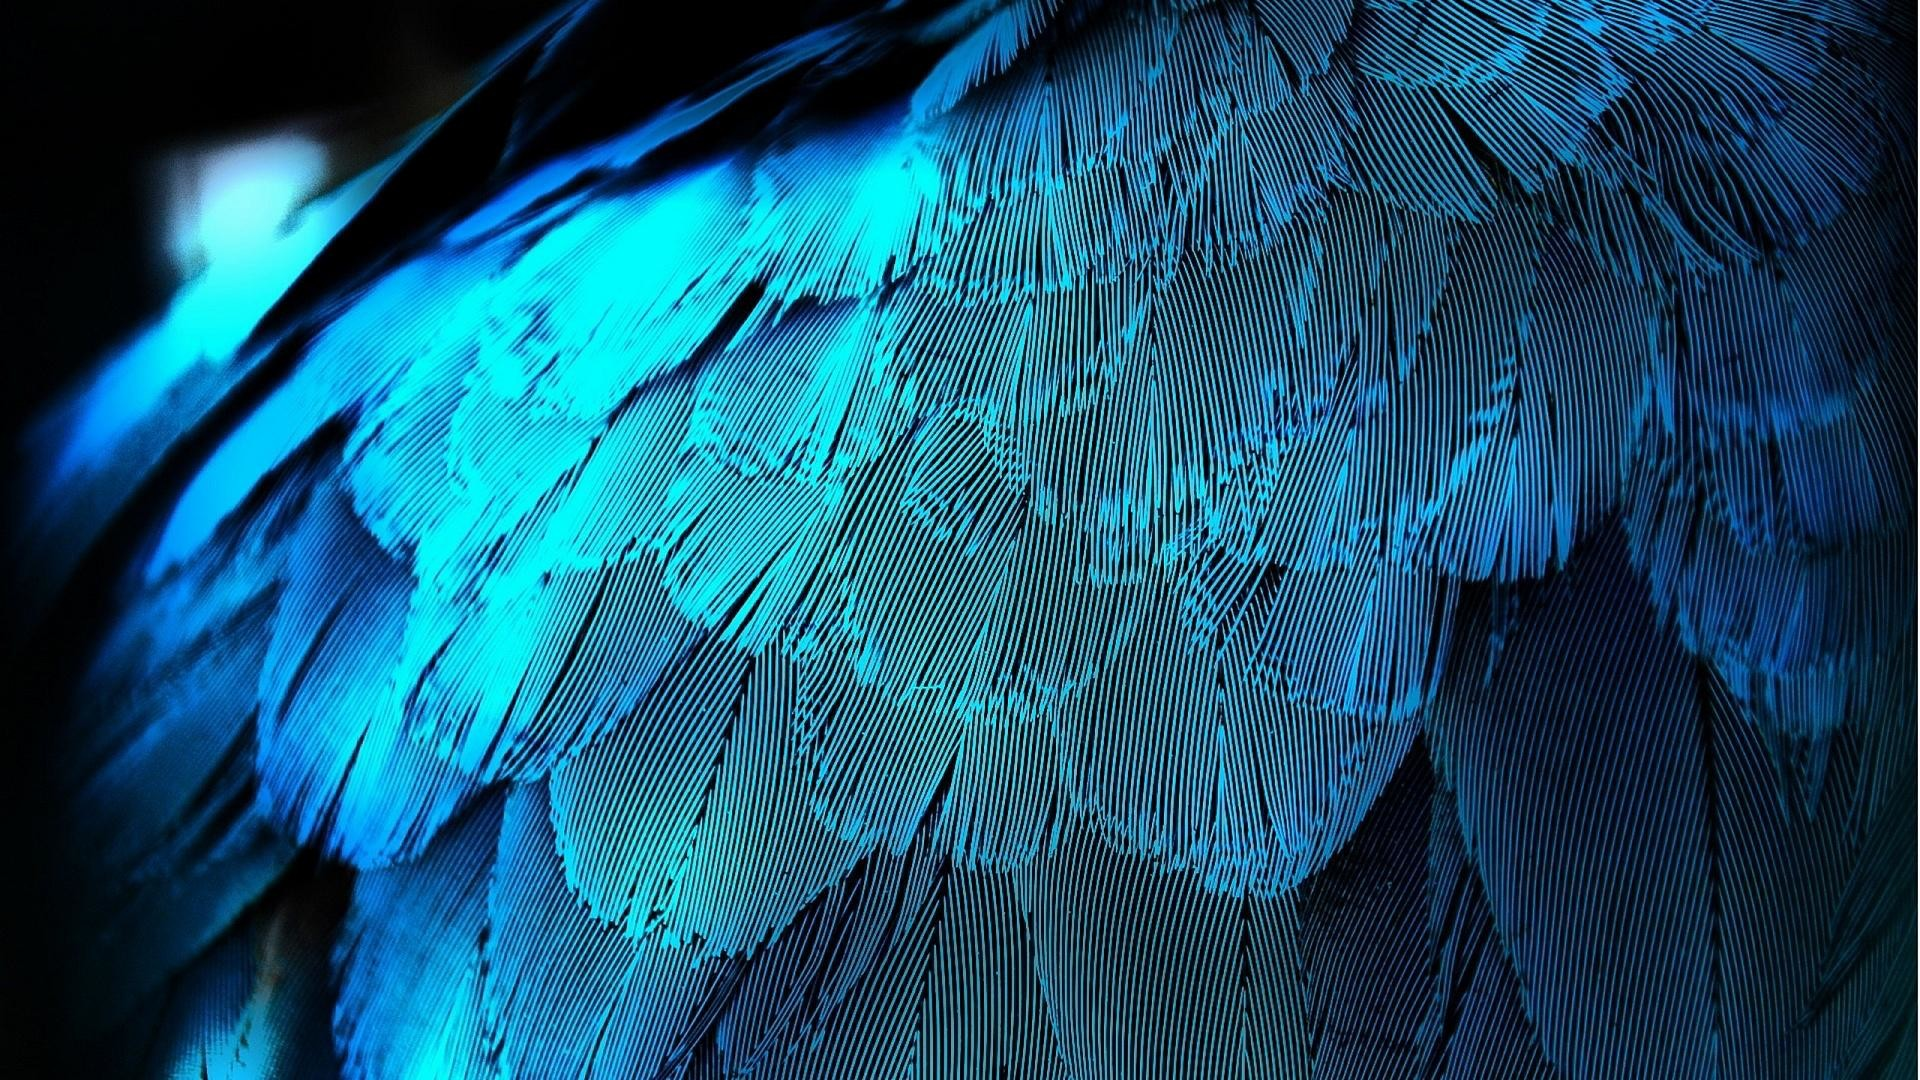 wallpaper.wiki-Pictures-blue-feather-1920×1080-PIC-WPB003119